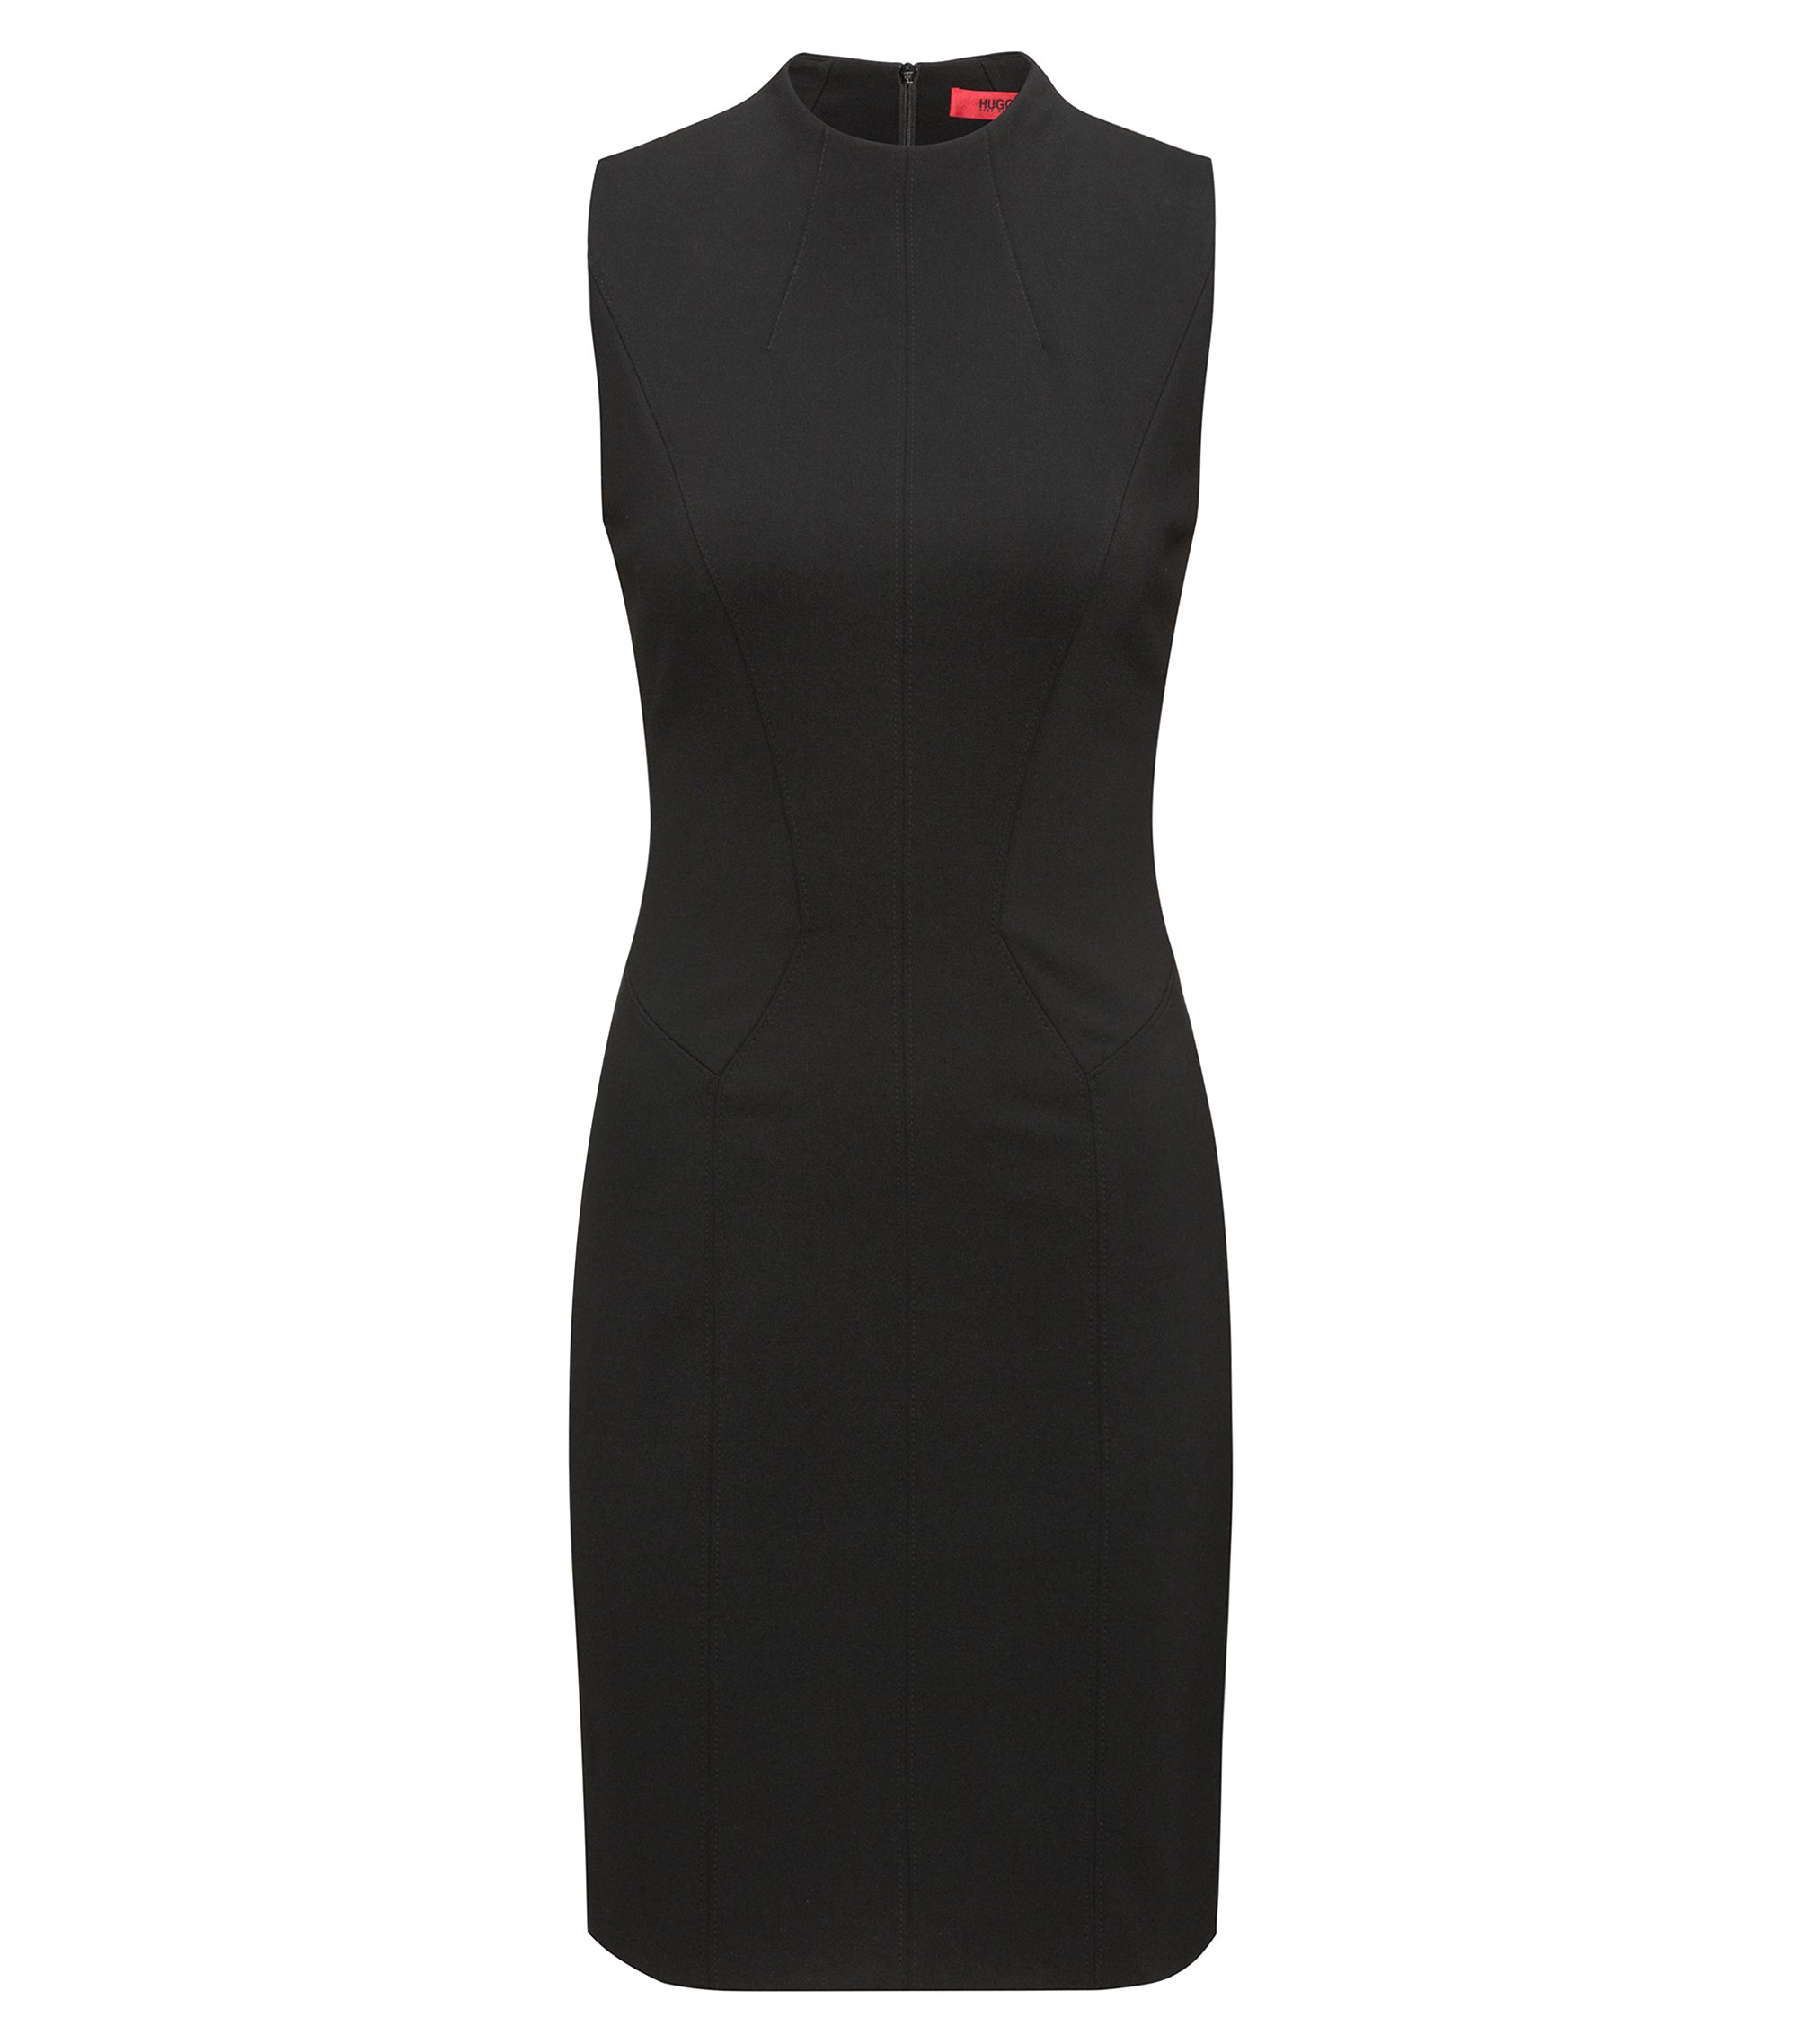 High-Collar Sheath Dress | Kihara, Black